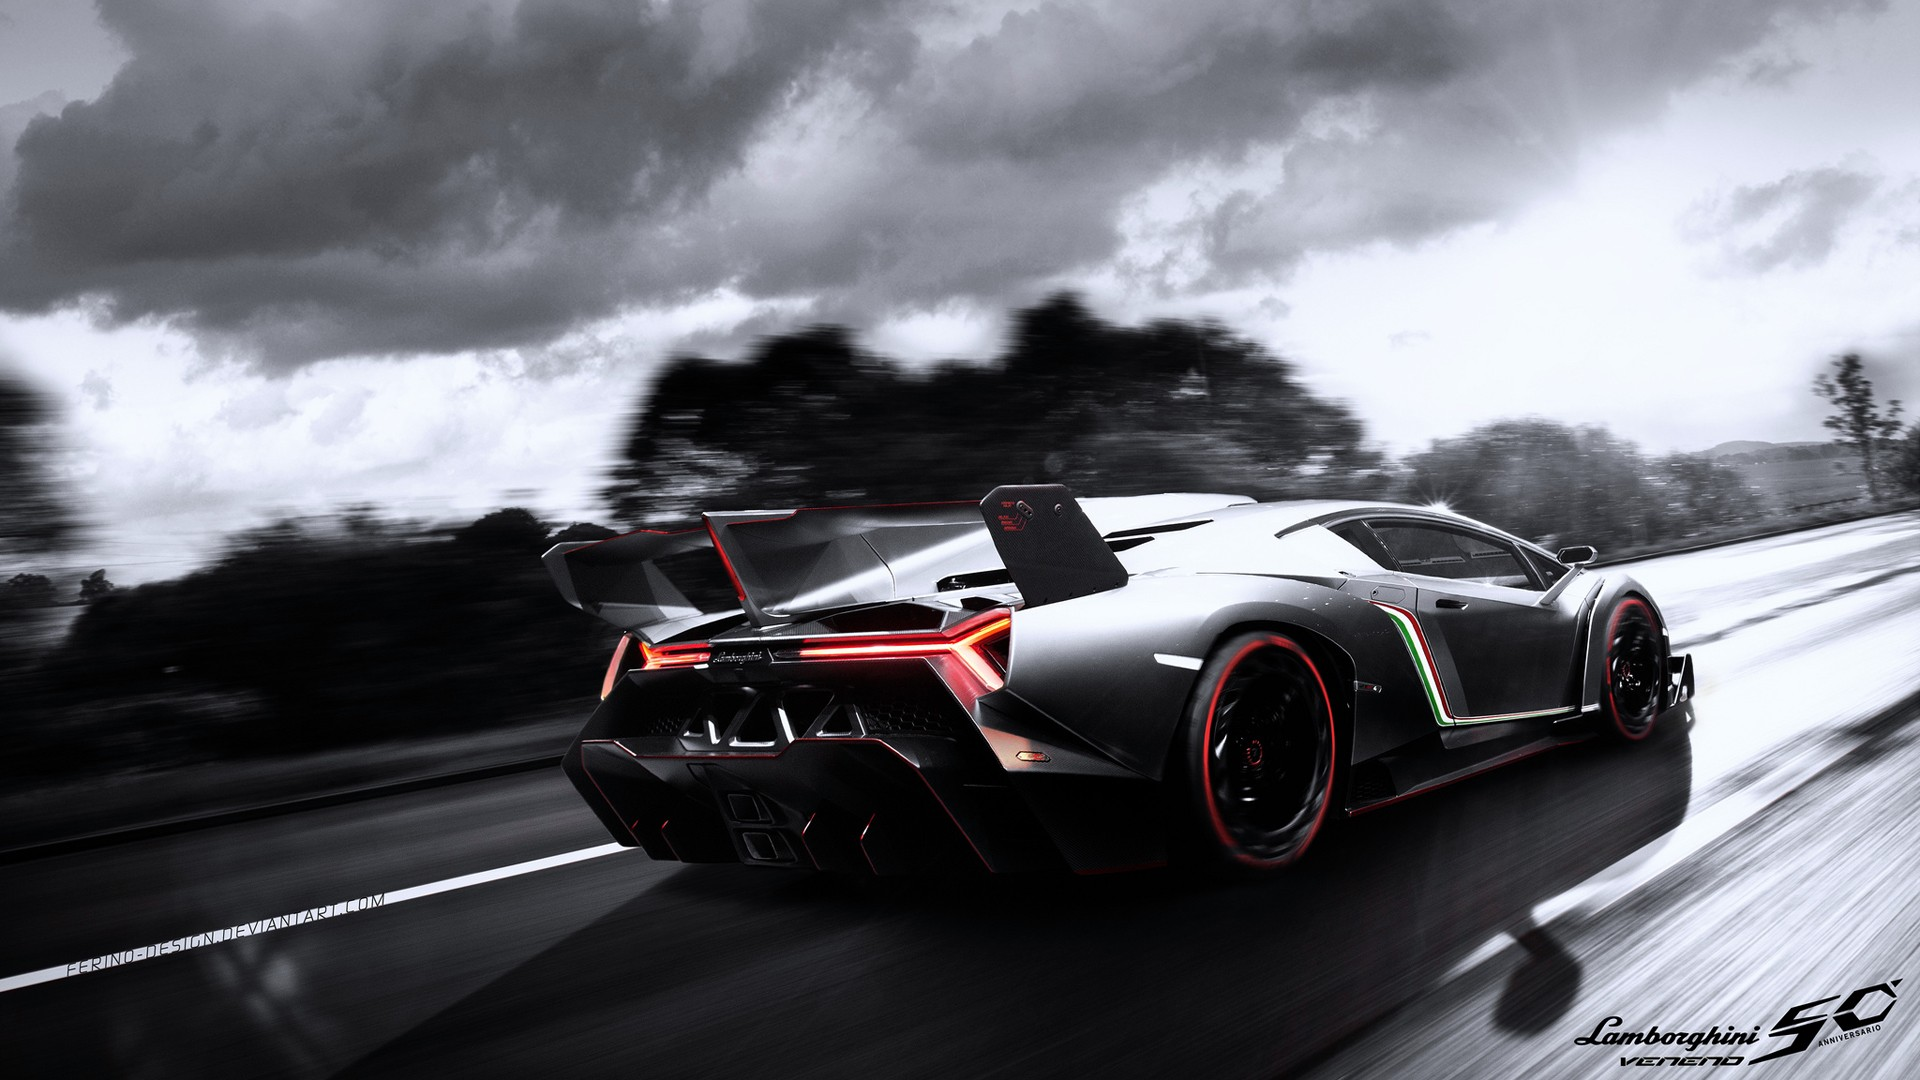 2013 Lamborghini Veneno Exclusive HD Wallpapers 4113 1920x1080